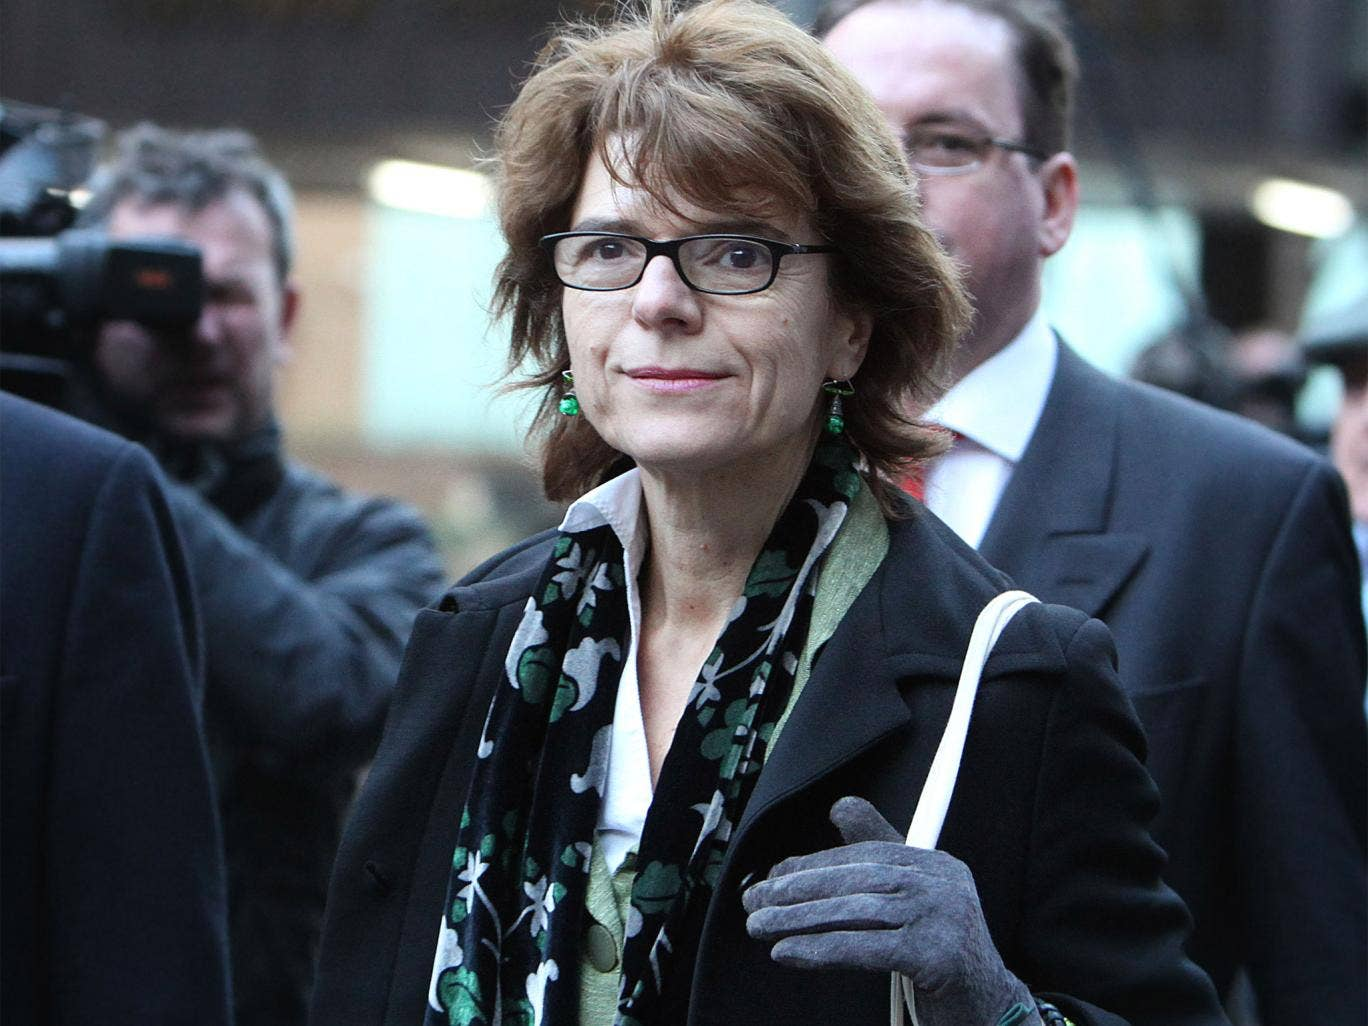 Vicky Pryce leaving Southwark Crown Court